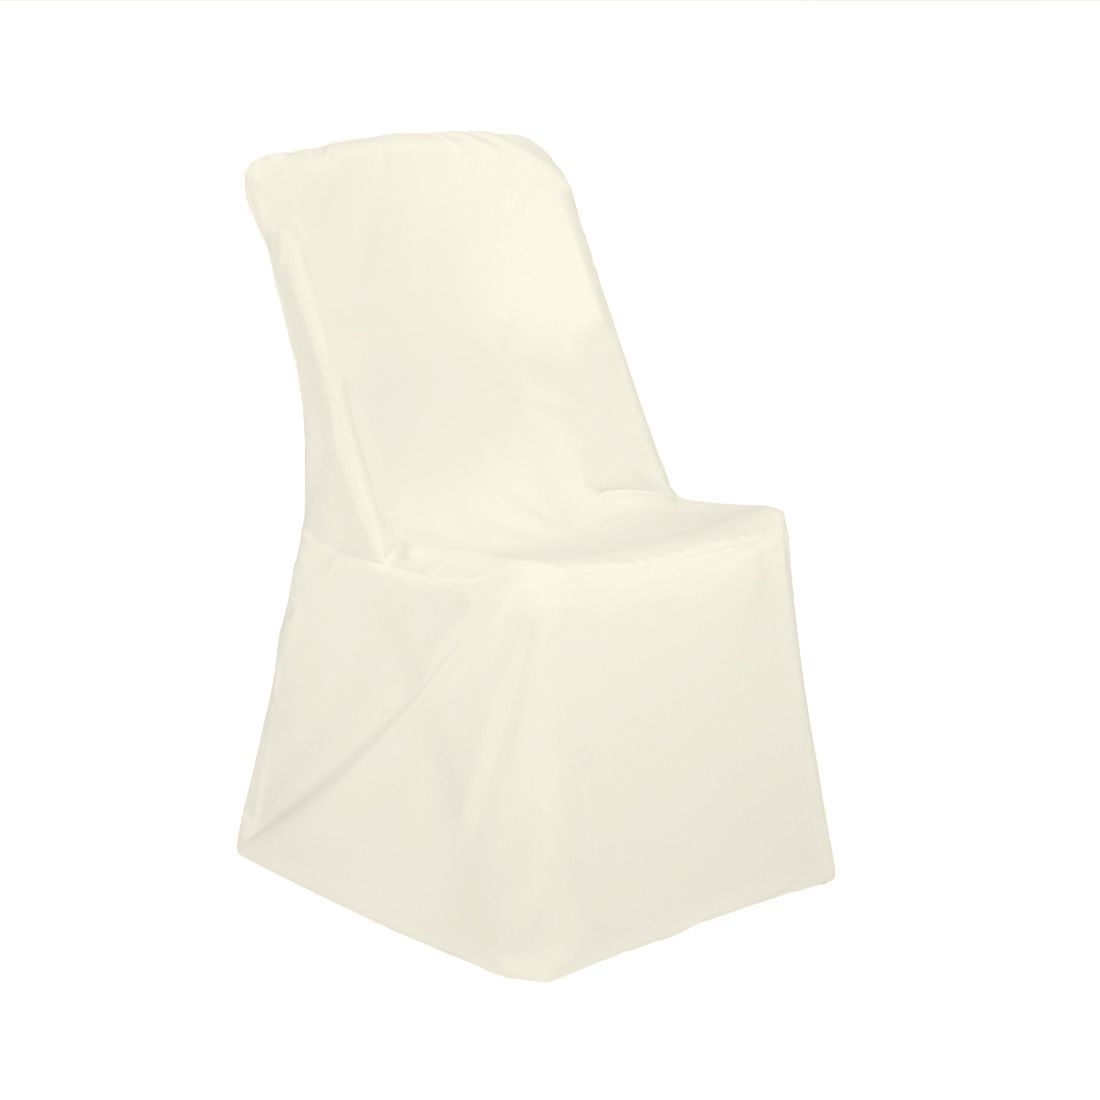 Lifetime Chair Nothing Beats A Contoured Lifetime Folding Chair Built For A